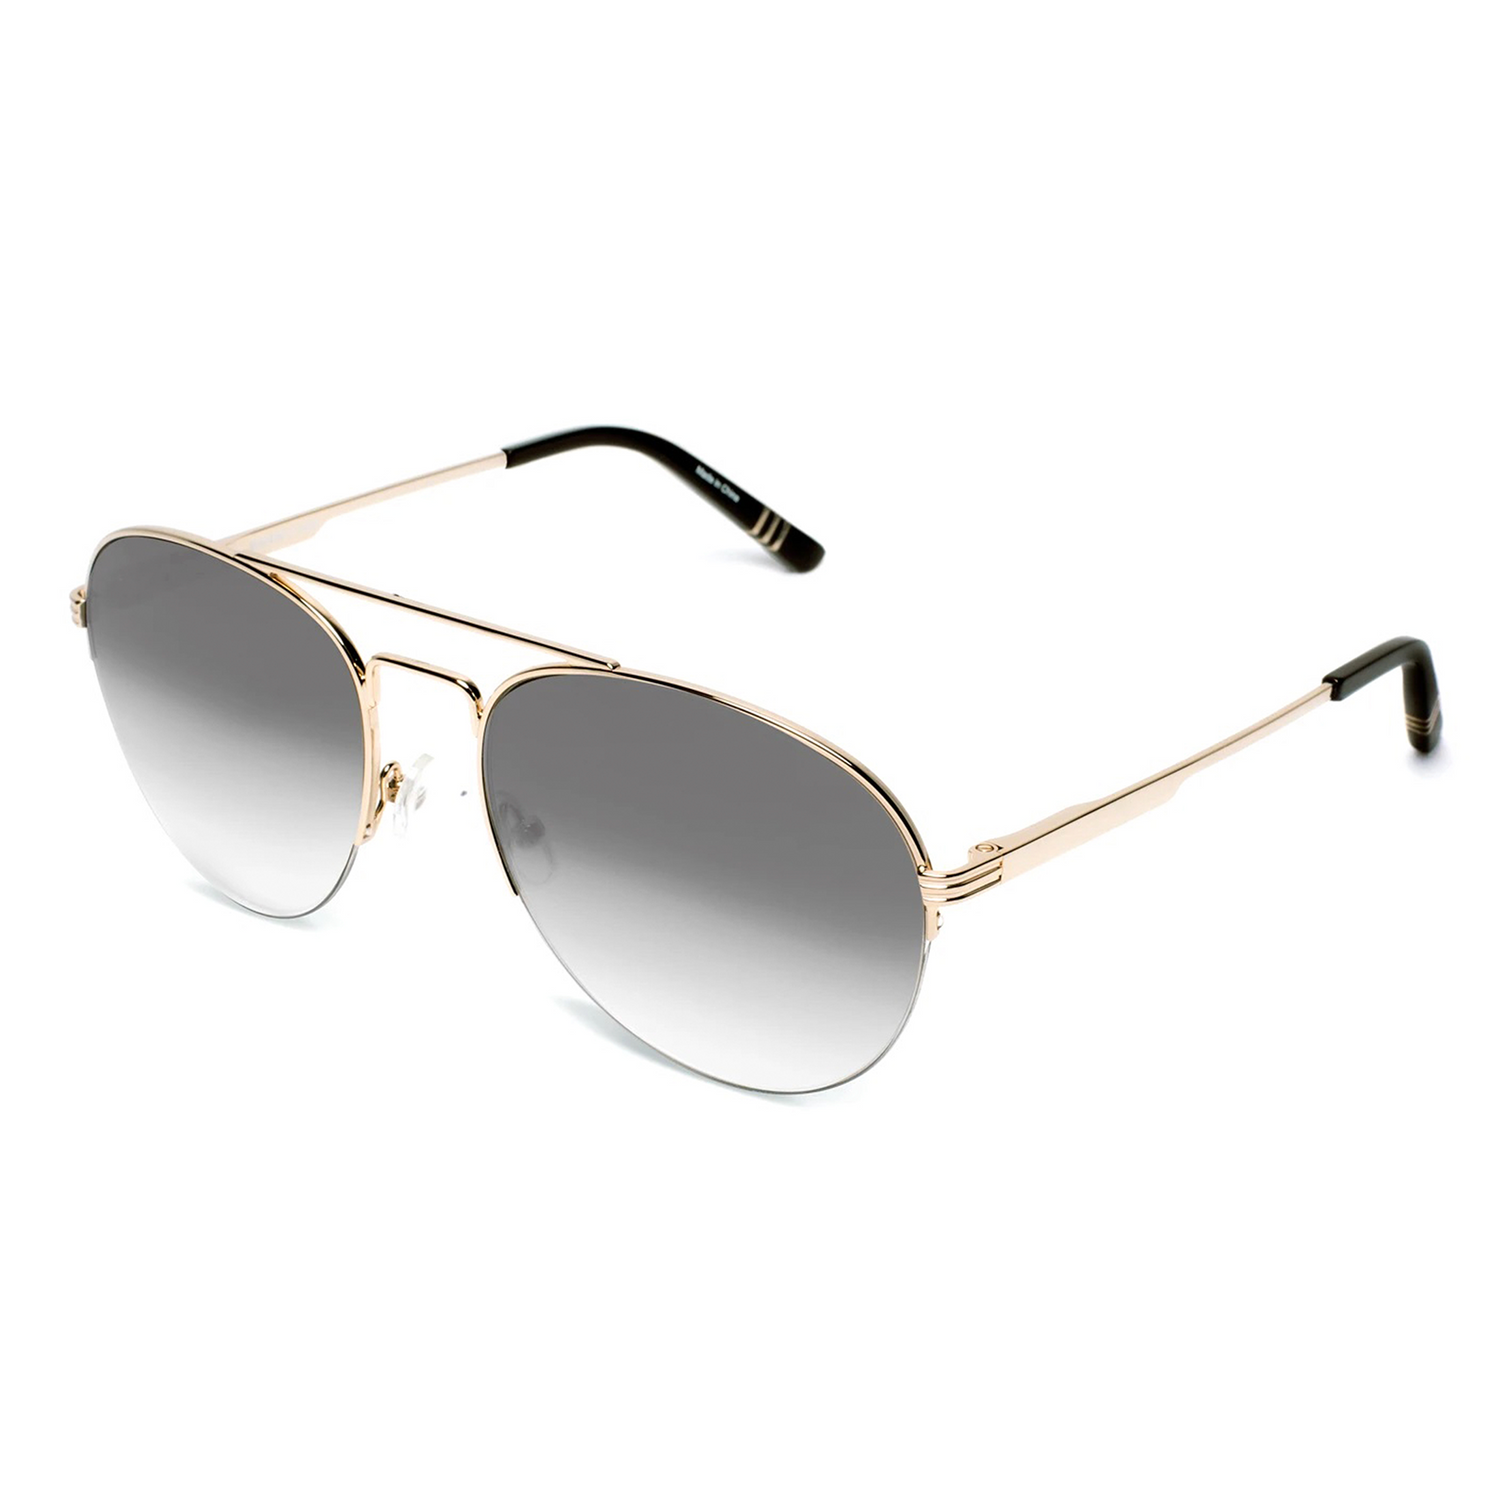 gold-frames-with-black-gradient-lenses-and-black-acetate-temple-tips